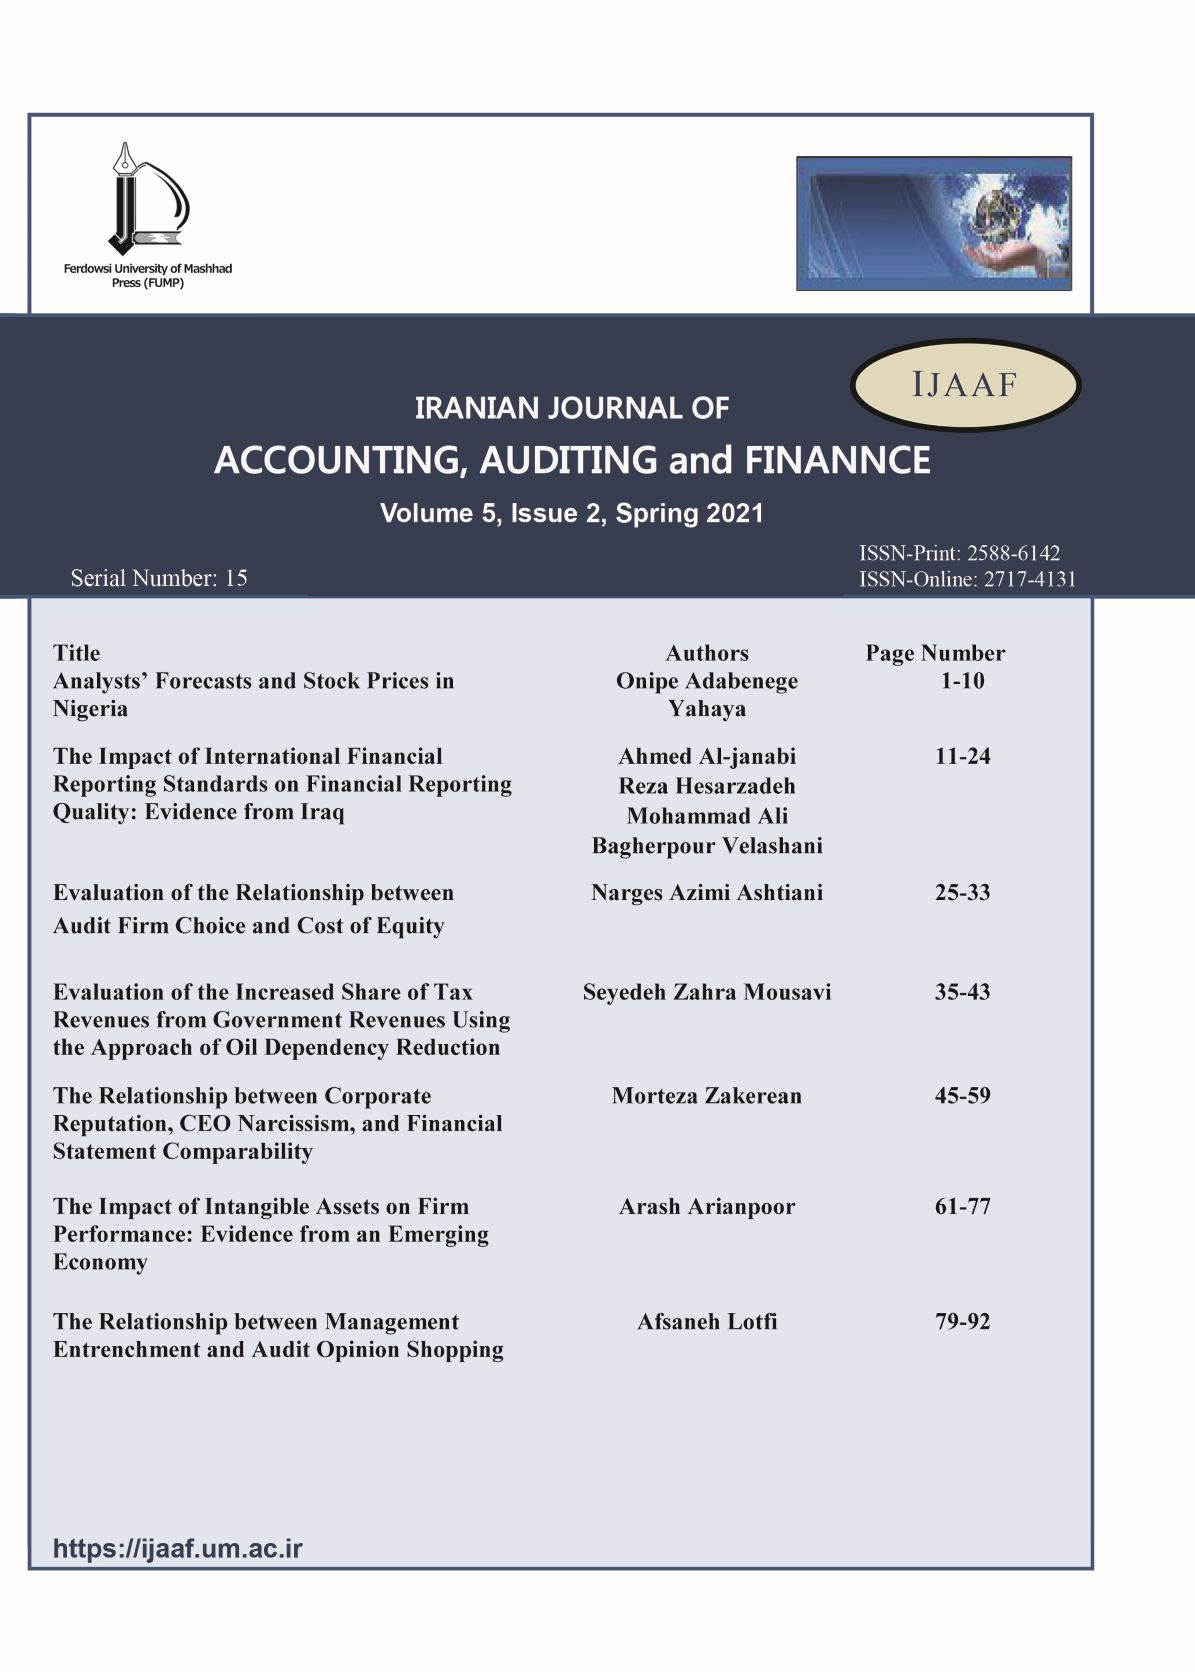 Iranian Journal of Accounting, Auditing and Finance